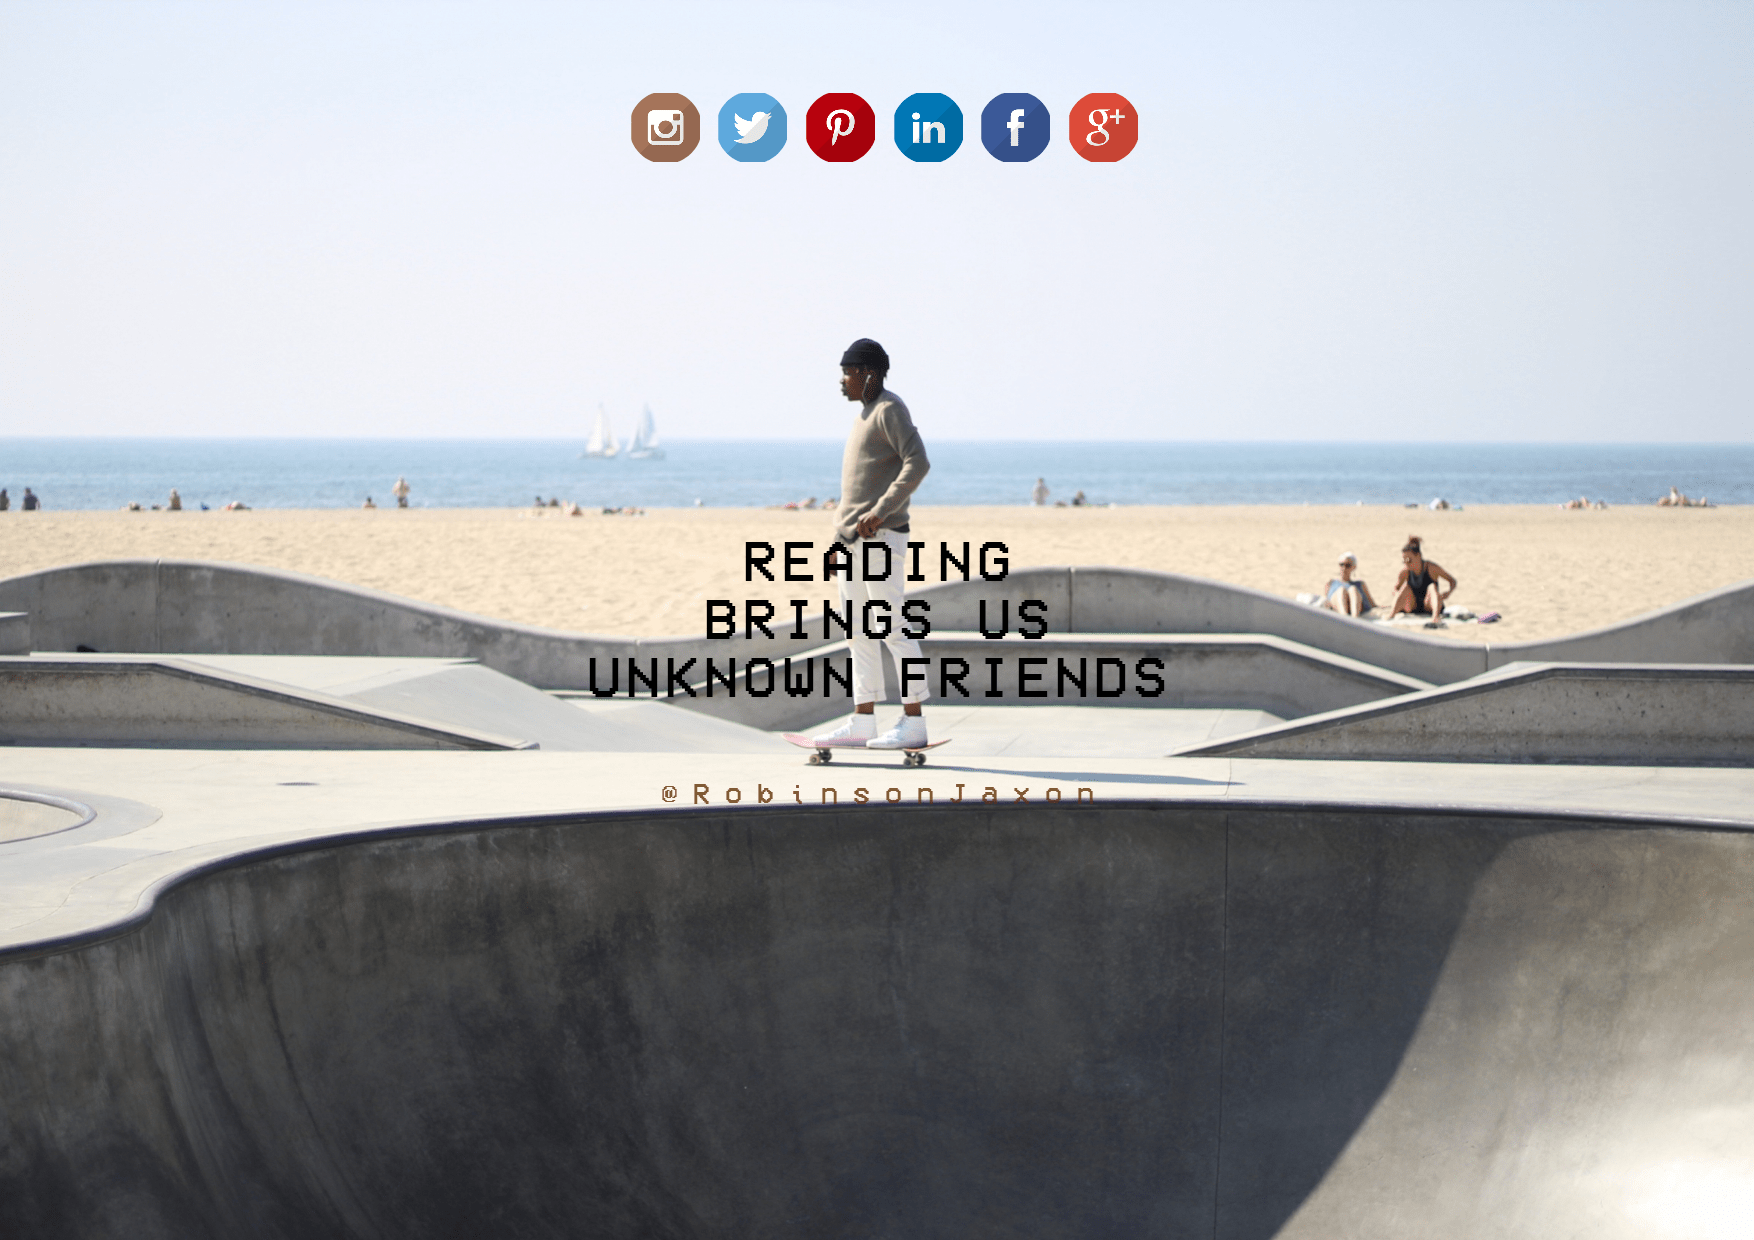 Mode,                Of,                Transport,                Sand,                Sky,                Vacation,                Landscape,                Recreation,                Text,                Sign,                Supplies,                Skateboarding,                Product,                 Free Image